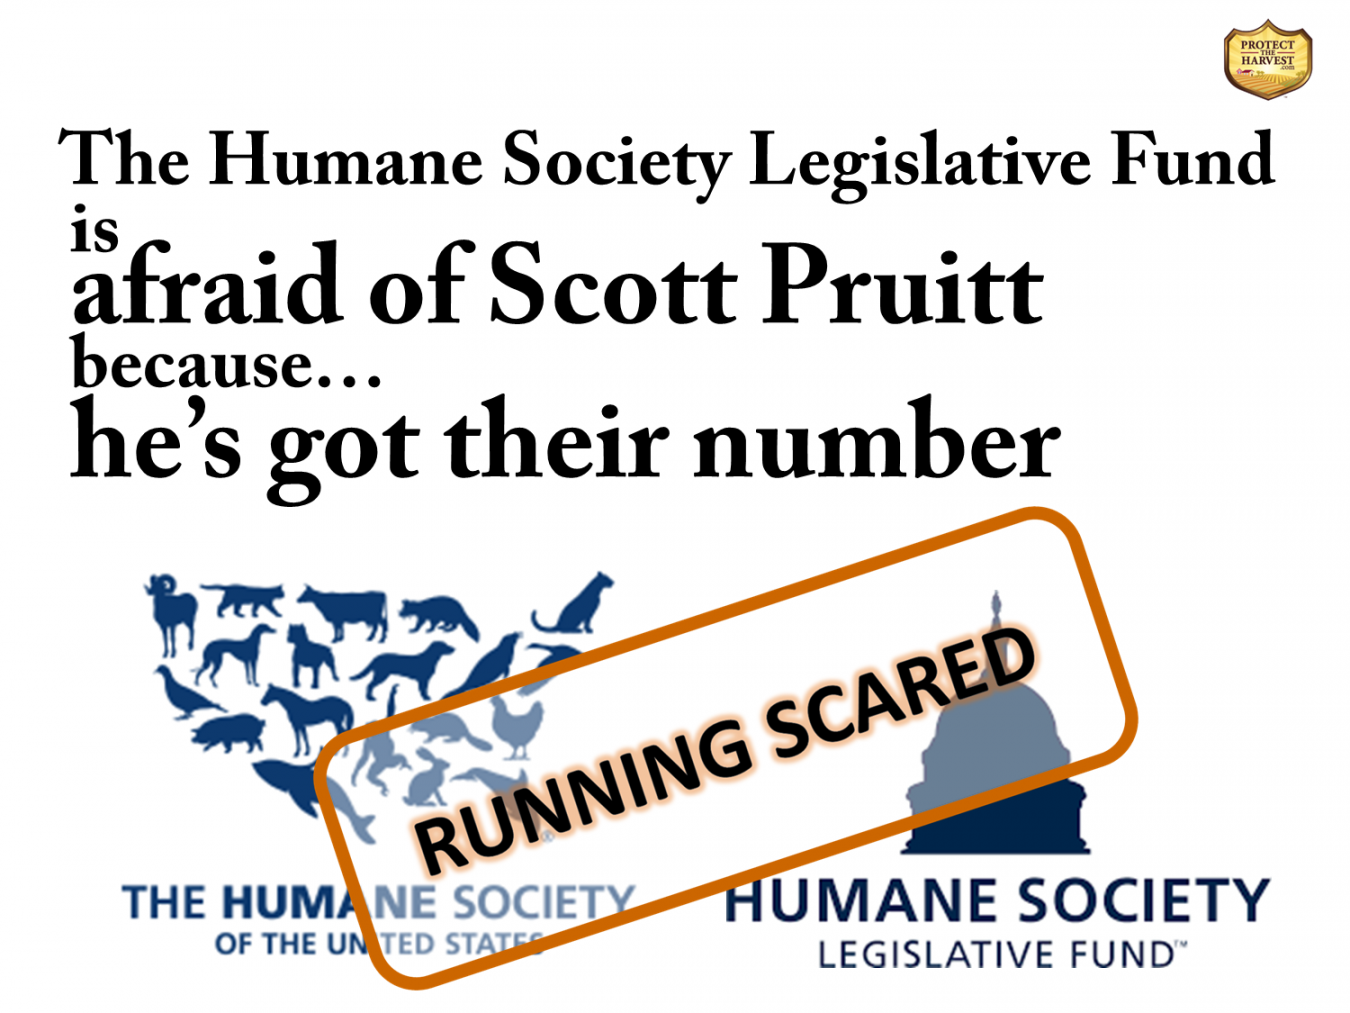 Humane Society Legislative Fund Afraid of Scott Pruitt